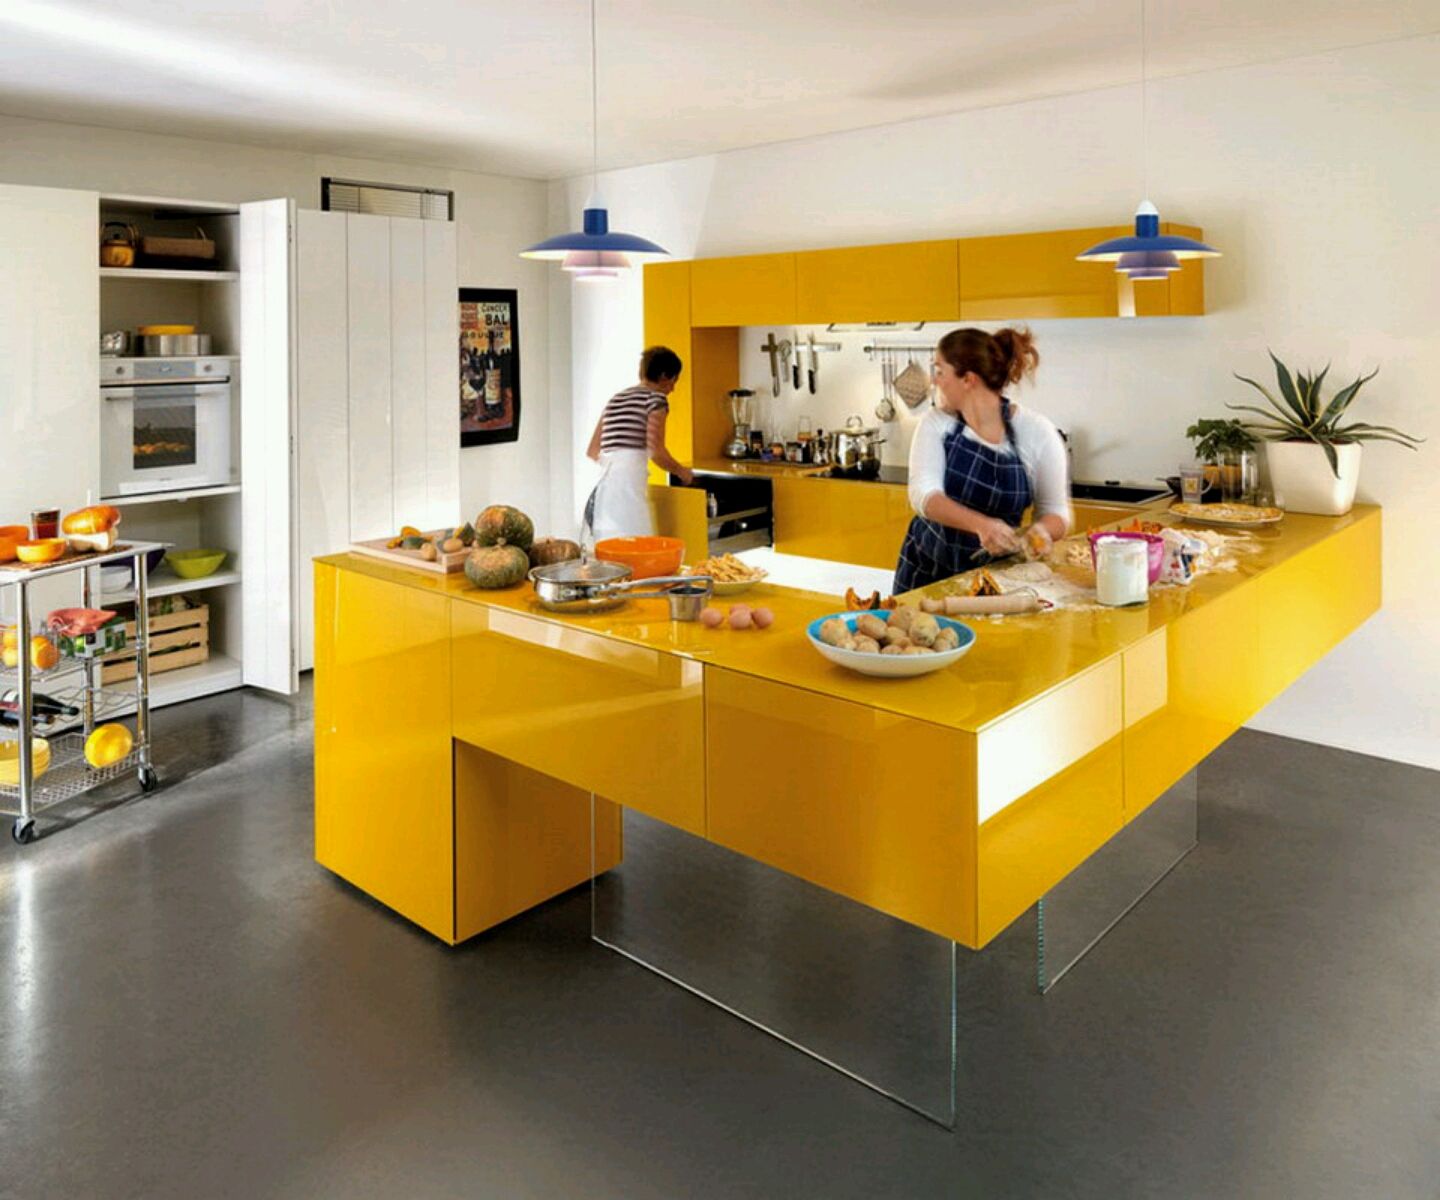 modern kitchen design ideas 2012 modern kitchen cabinets designs ideas furniture gallery 340